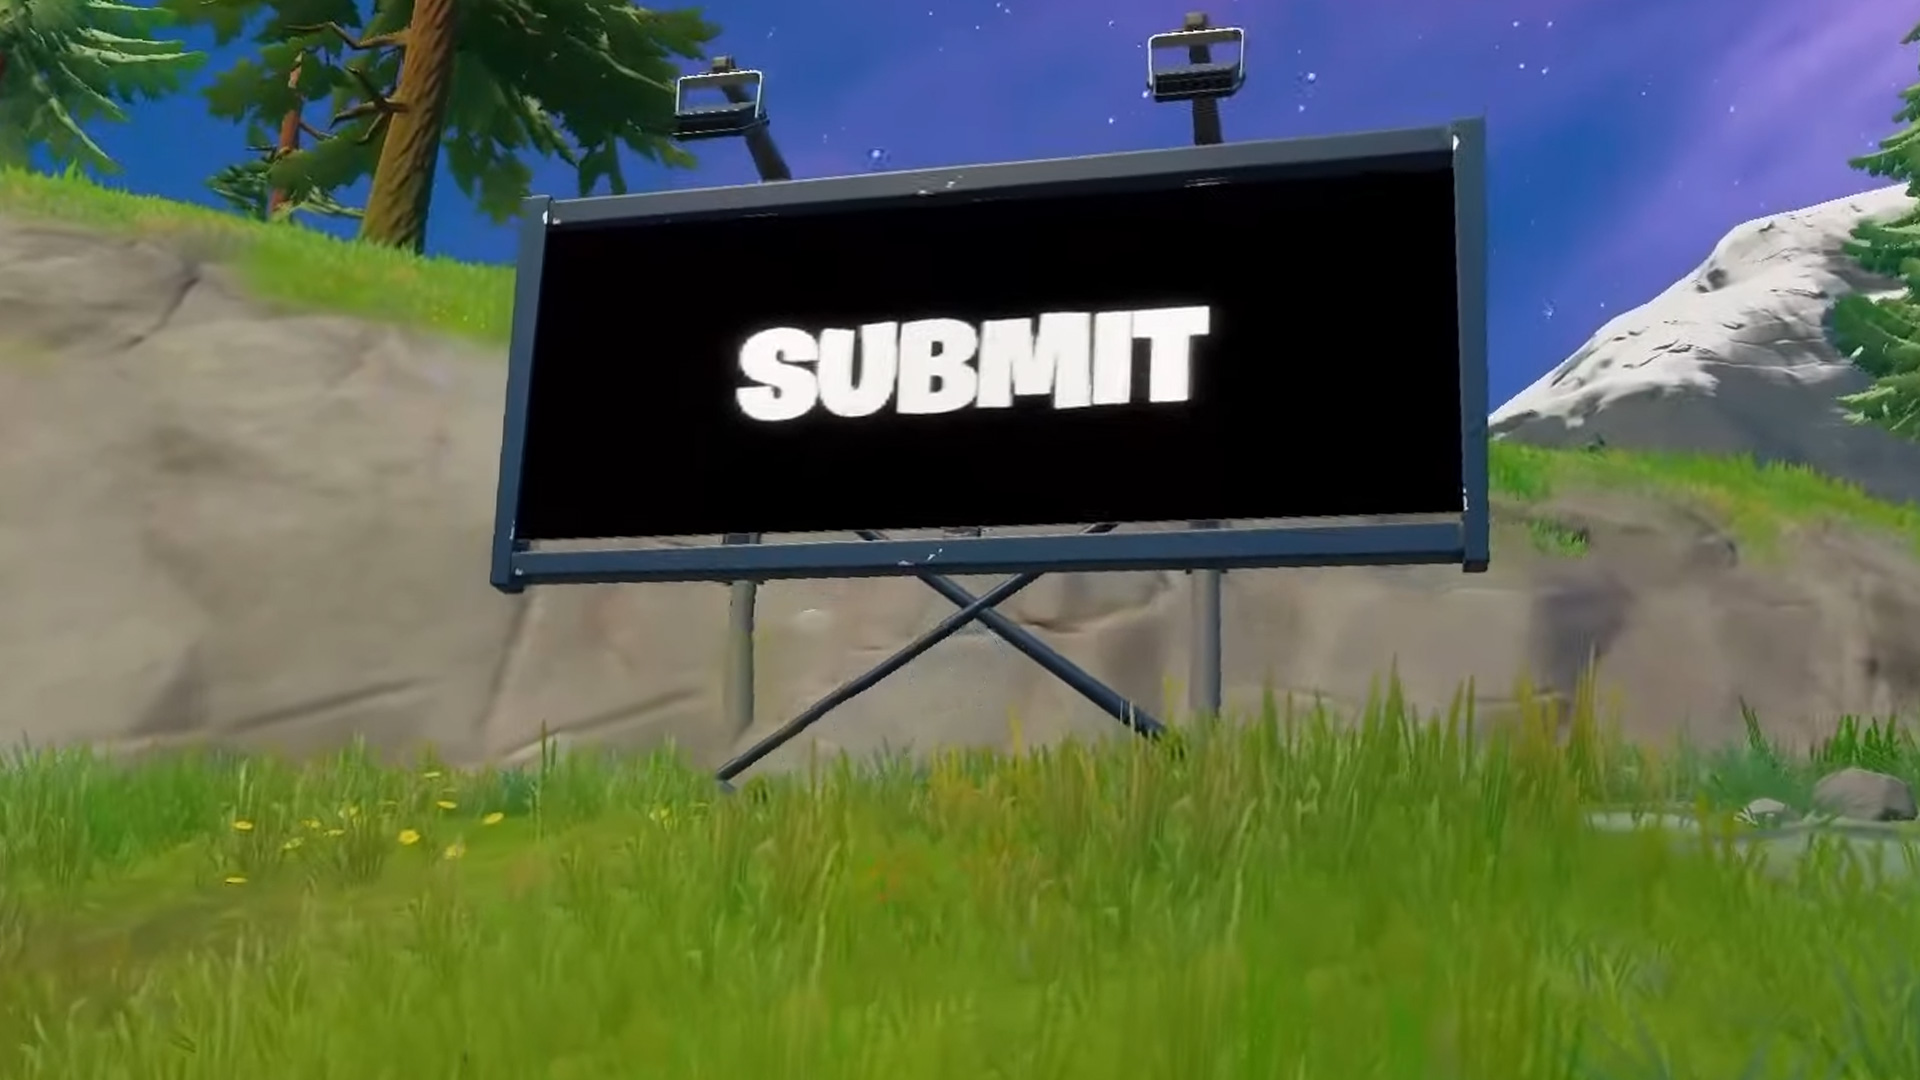 Where to find a detector to disable an alien billboard in Fortnite